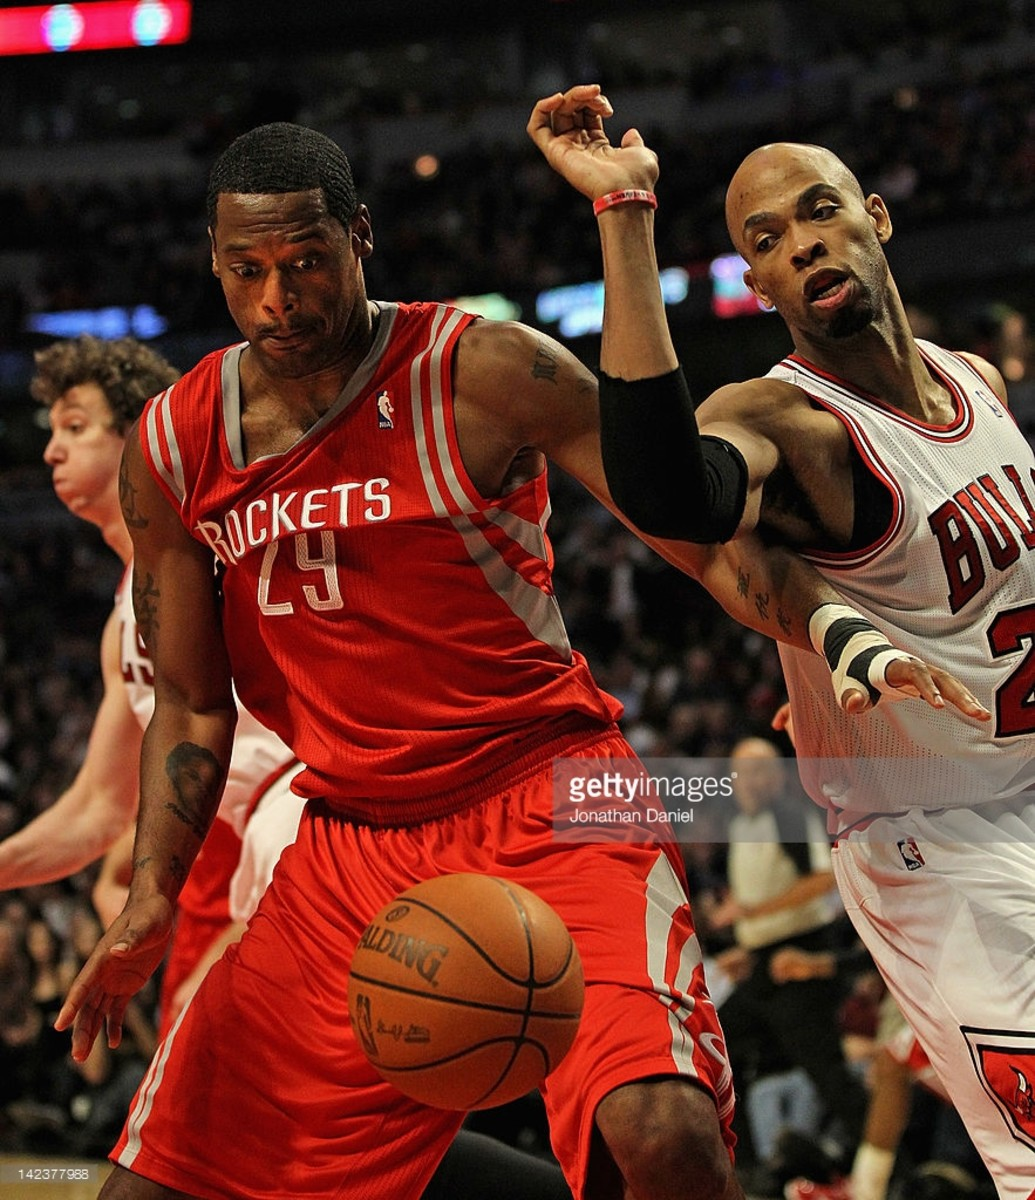 CHICAGO, IL - APRIL 02: of the Chicago Bulls of the Houston Rockets at the United Center on April 2, 2012 in Chicago, Illinois. The Rockets defeated the Bulls 99-93. NOTE TO USER: User expressly acknowledges and agrees that, by downloading and or using this photograph, User is consenting to the terms and conditions of the Getty Images License Agreement. (Photo by Jonathan Daniel/Getty Images)